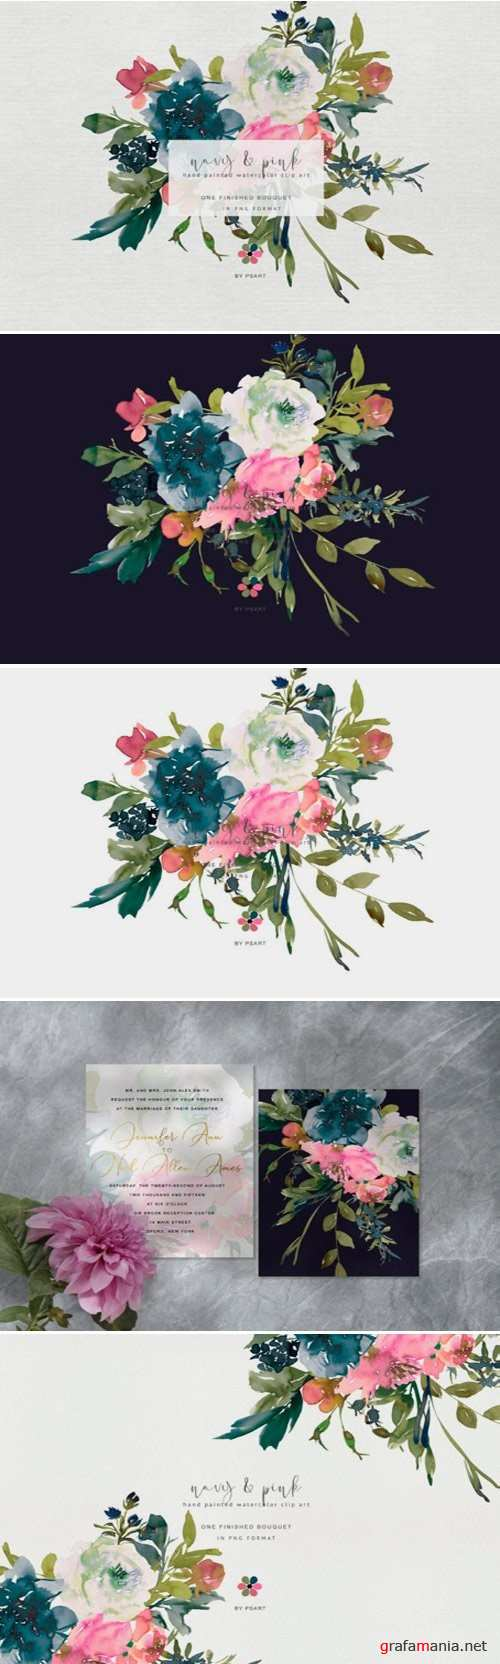 Hand Painted Watercolor Floral Bouquet Clipart - 345135